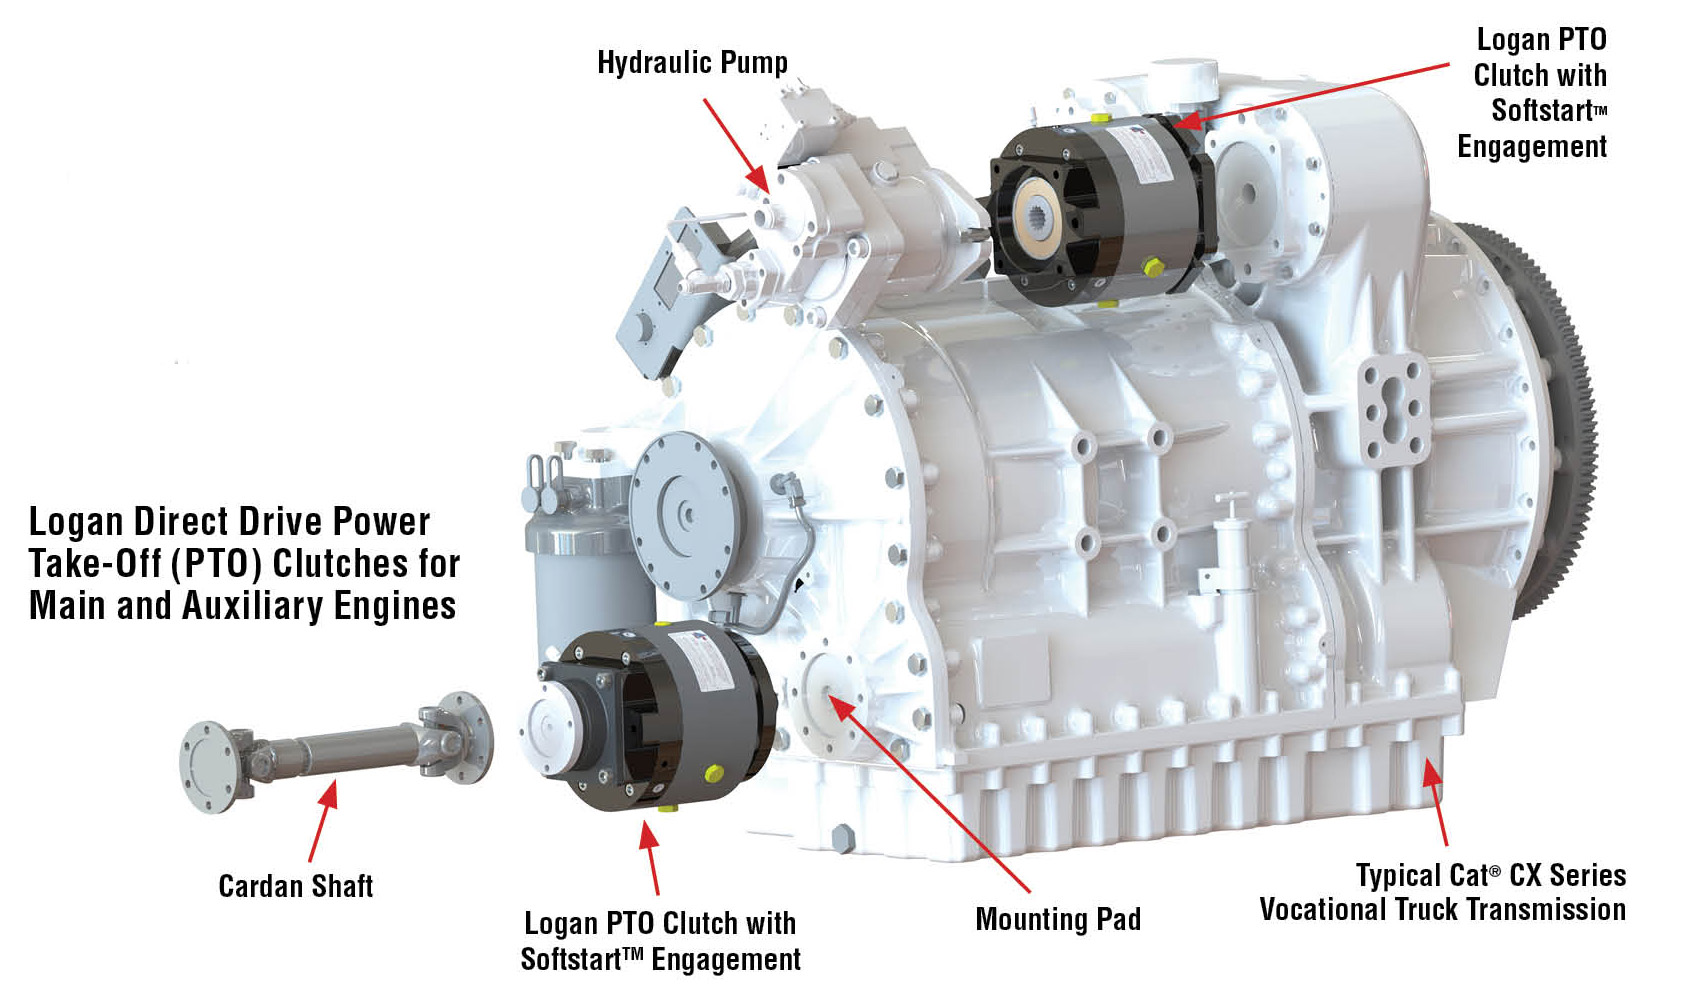 Logan Direct Drive Power Take-Off (PTO) Clutches for Main and Auxiliary Engines